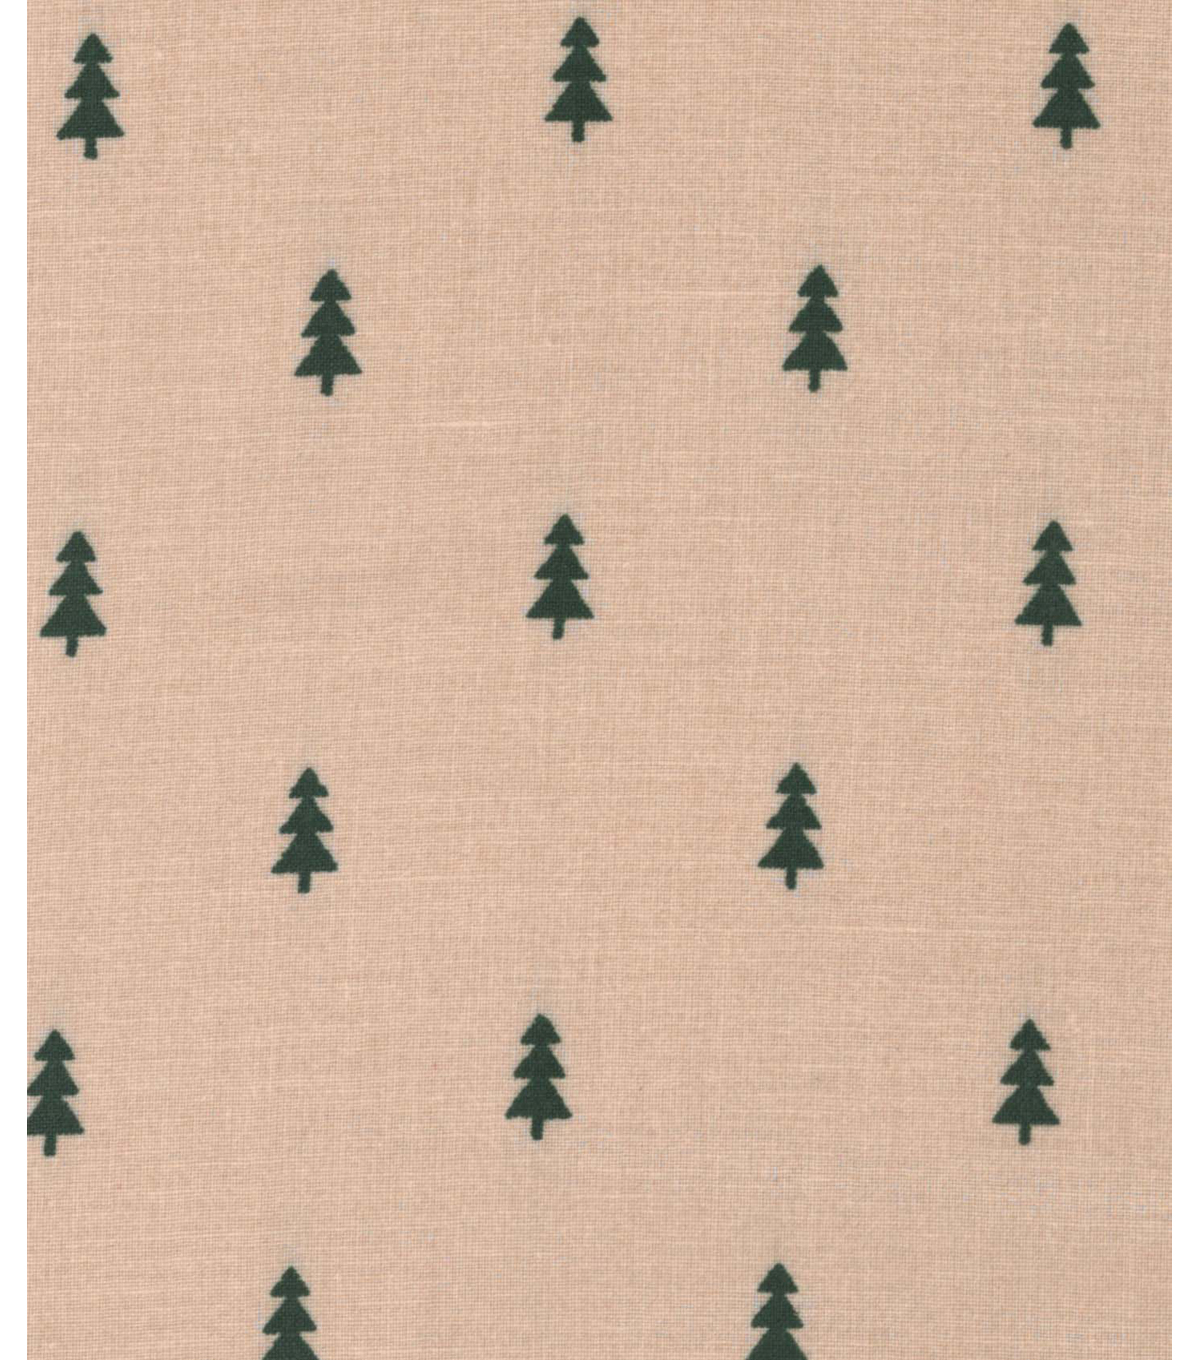 Christmas Cotton Fabric 43''-Mini Christmas Trees on Beige